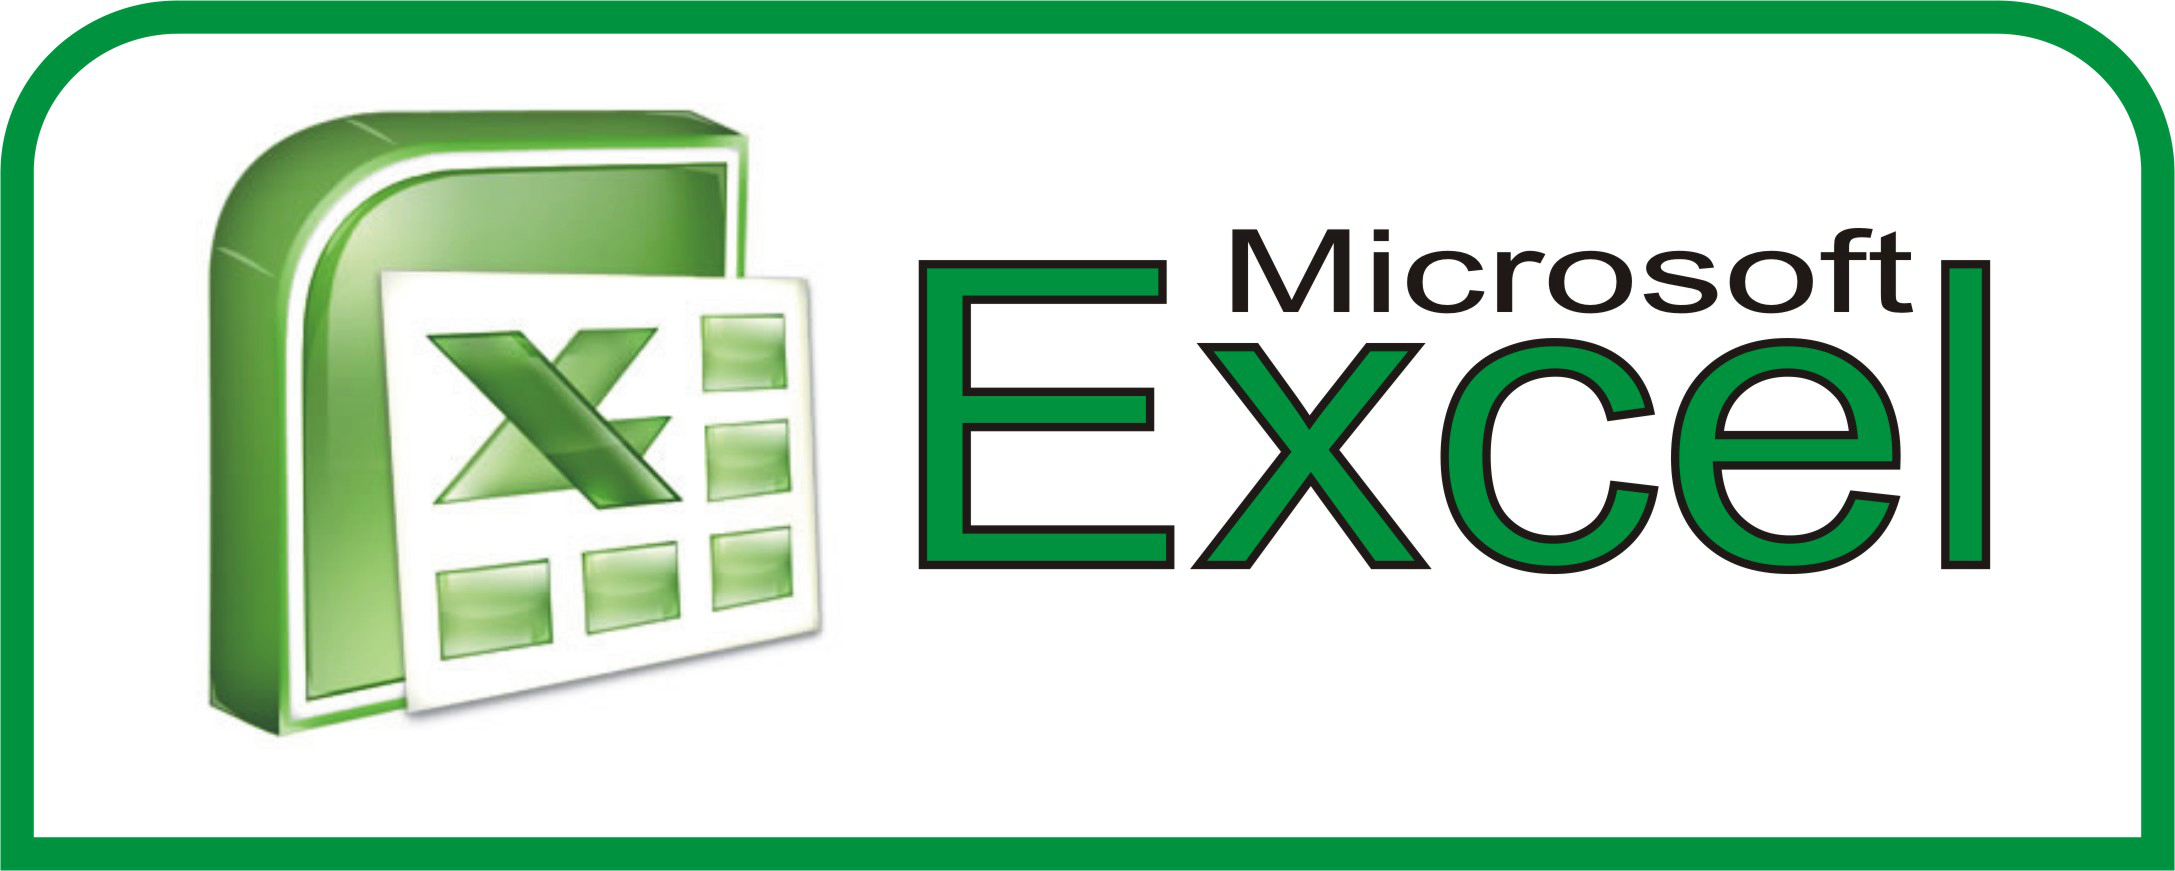 Ediblewildsus  Wonderful  Excel Shortcuts You Probably Didnt Know About  Techdissected With Extraordinary Microsoft Office Excel  Notes Pdf Besides Lock Excel Furthermore How To Unlock Excel Sheet With Delectable Bank Reconciliation Template Excel Also Date Calculation In Excel In Addition How To Merge Spreadsheets In Excel And Normal Distribution Excel Formula As Well As Excel Exclamation Point Additionally Excel Expert Test From Techdissectedcom With Ediblewildsus  Extraordinary  Excel Shortcuts You Probably Didnt Know About  Techdissected With Delectable Microsoft Office Excel  Notes Pdf Besides Lock Excel Furthermore How To Unlock Excel Sheet And Wonderful Bank Reconciliation Template Excel Also Date Calculation In Excel In Addition How To Merge Spreadsheets In Excel From Techdissectedcom